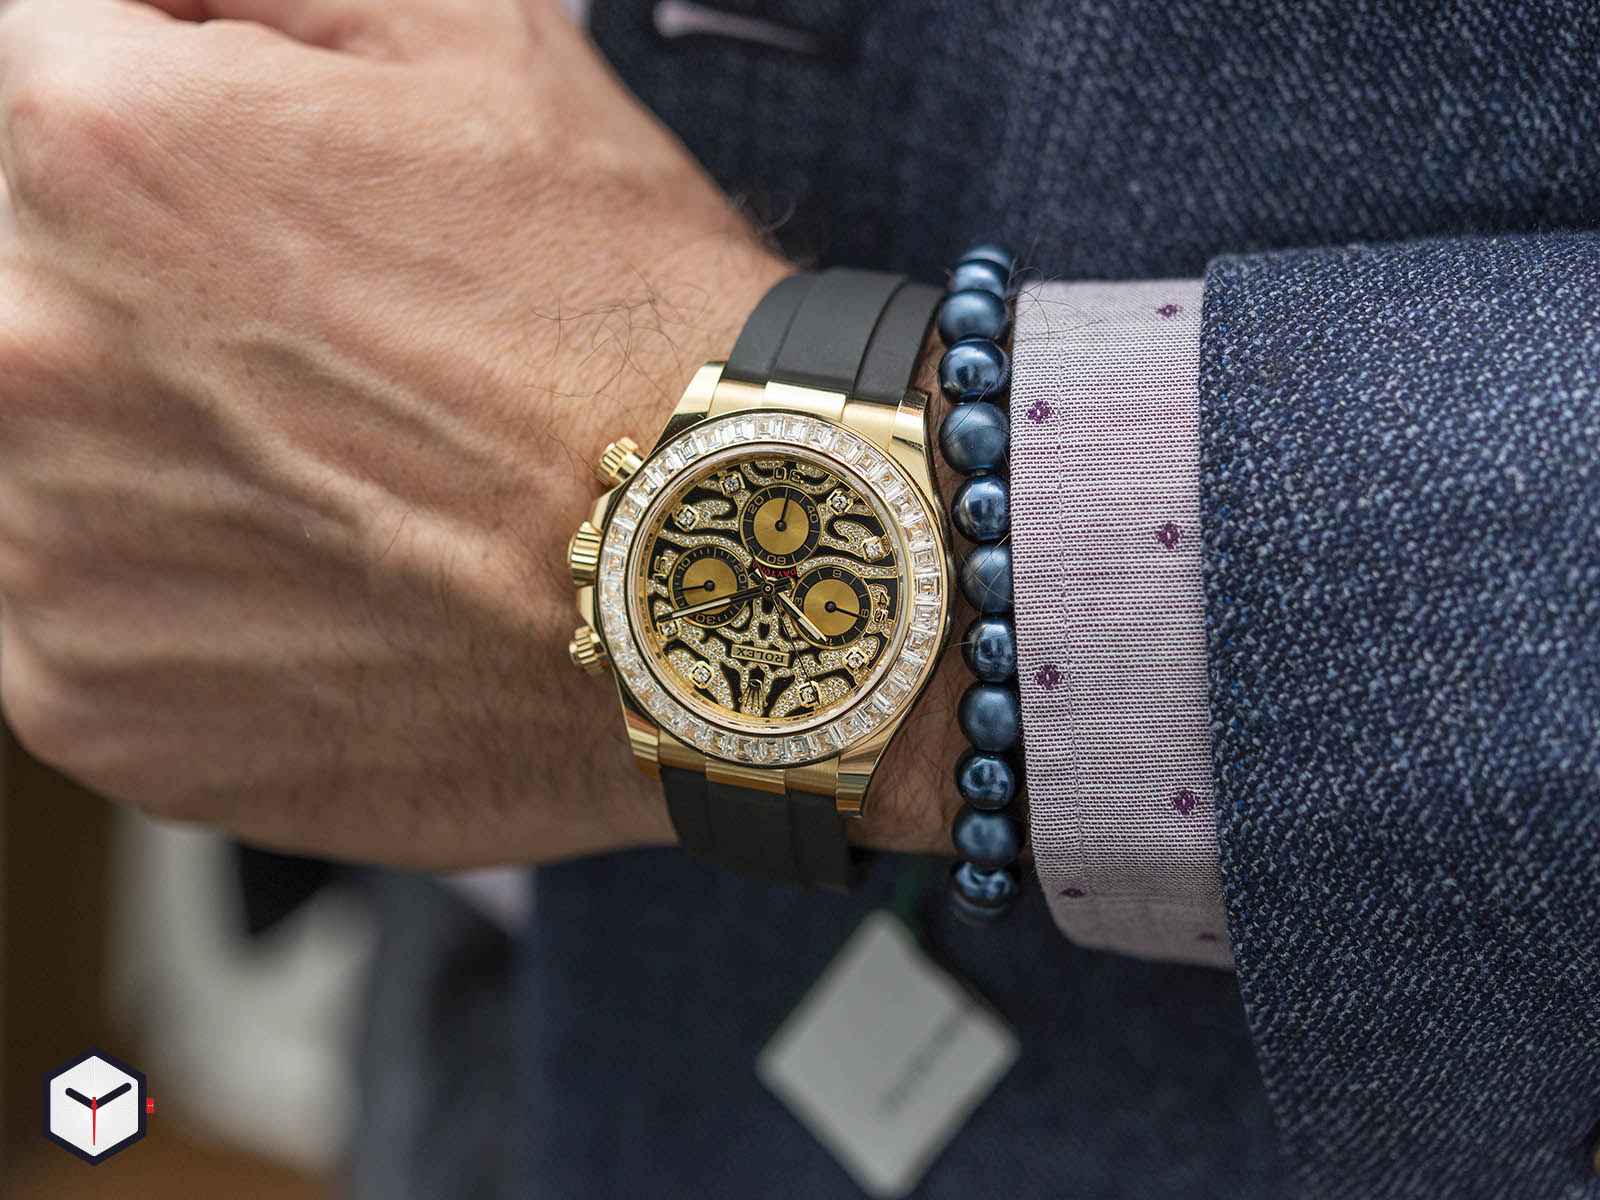 116588-tbr-rolex-daytona-yellow-gold-diamond-baselworld-2019-5.jpg